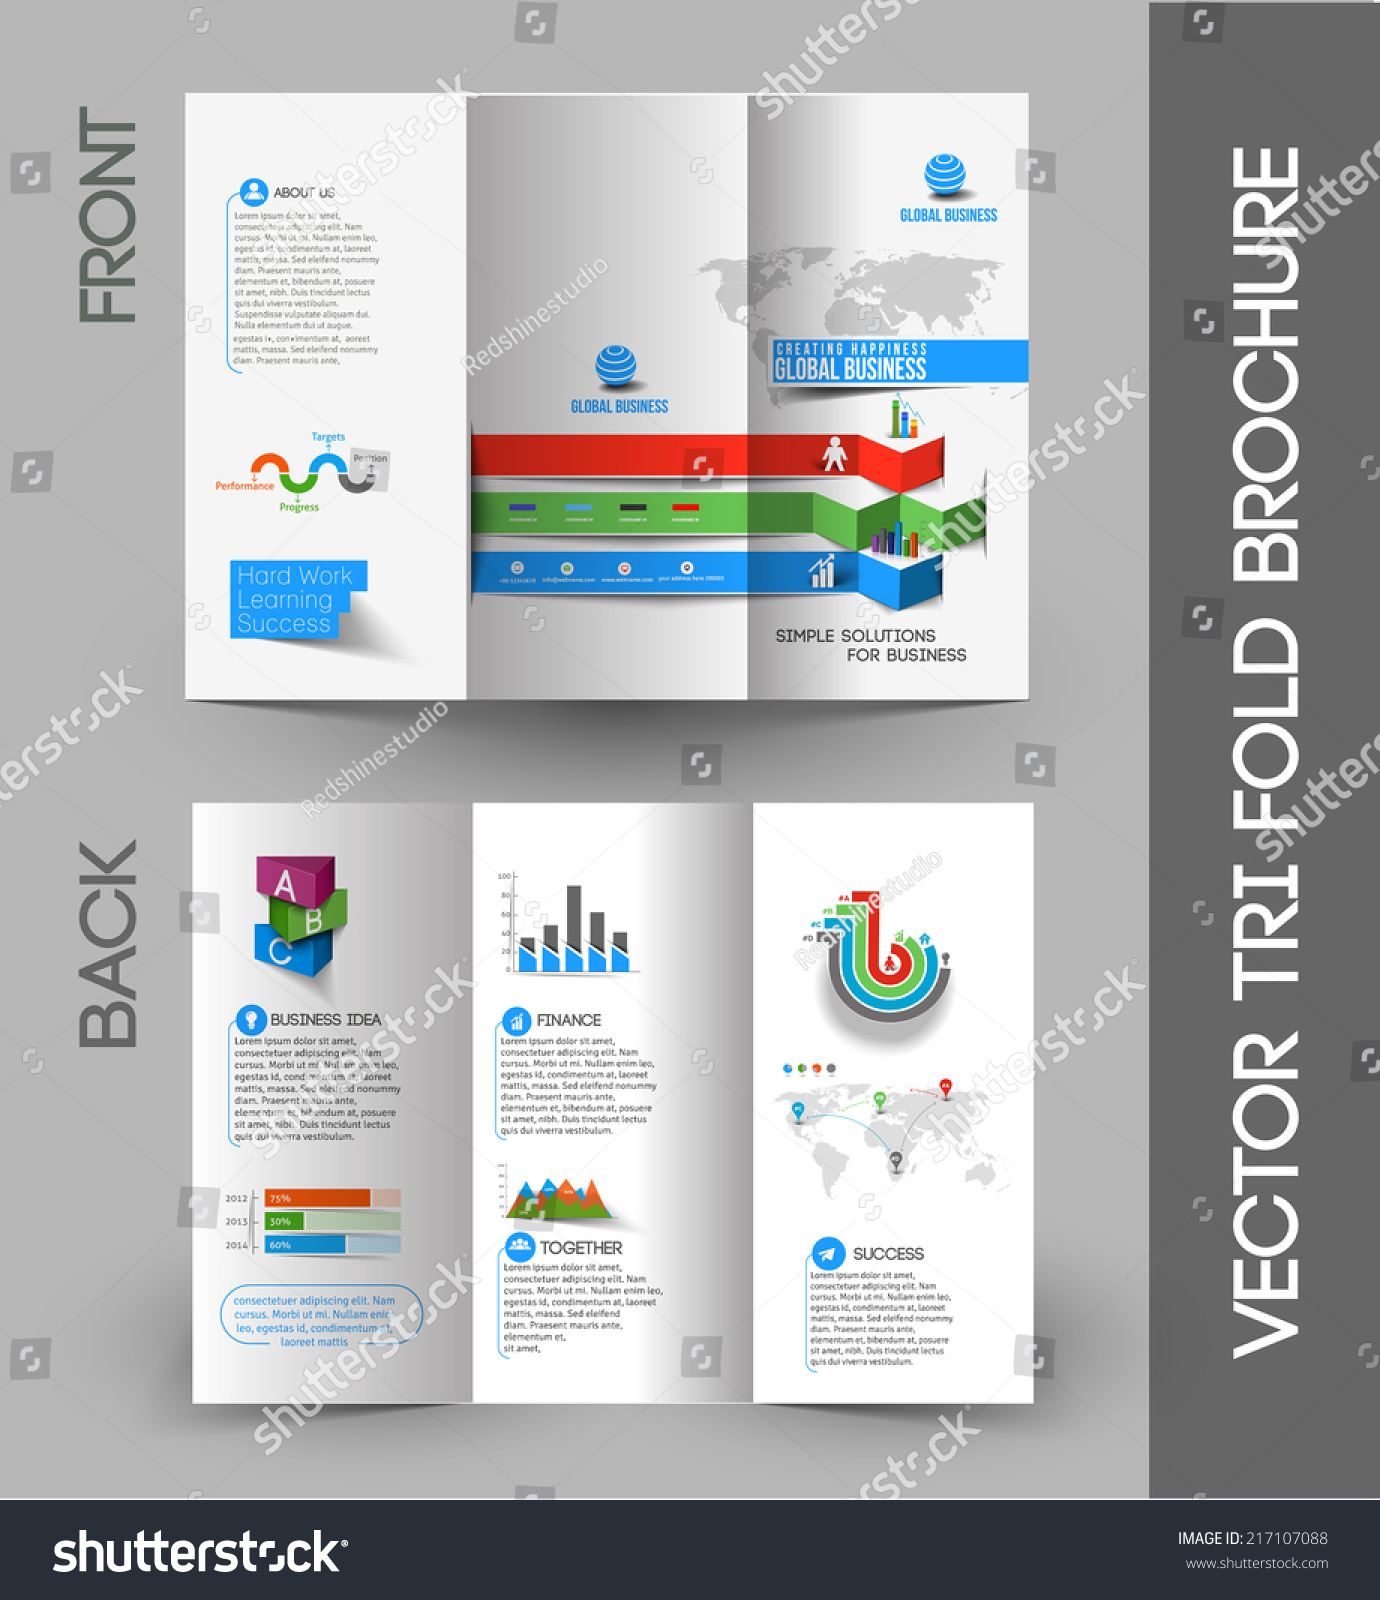 Business Infographic Trifold Brochure Design Element Stock Vector ...